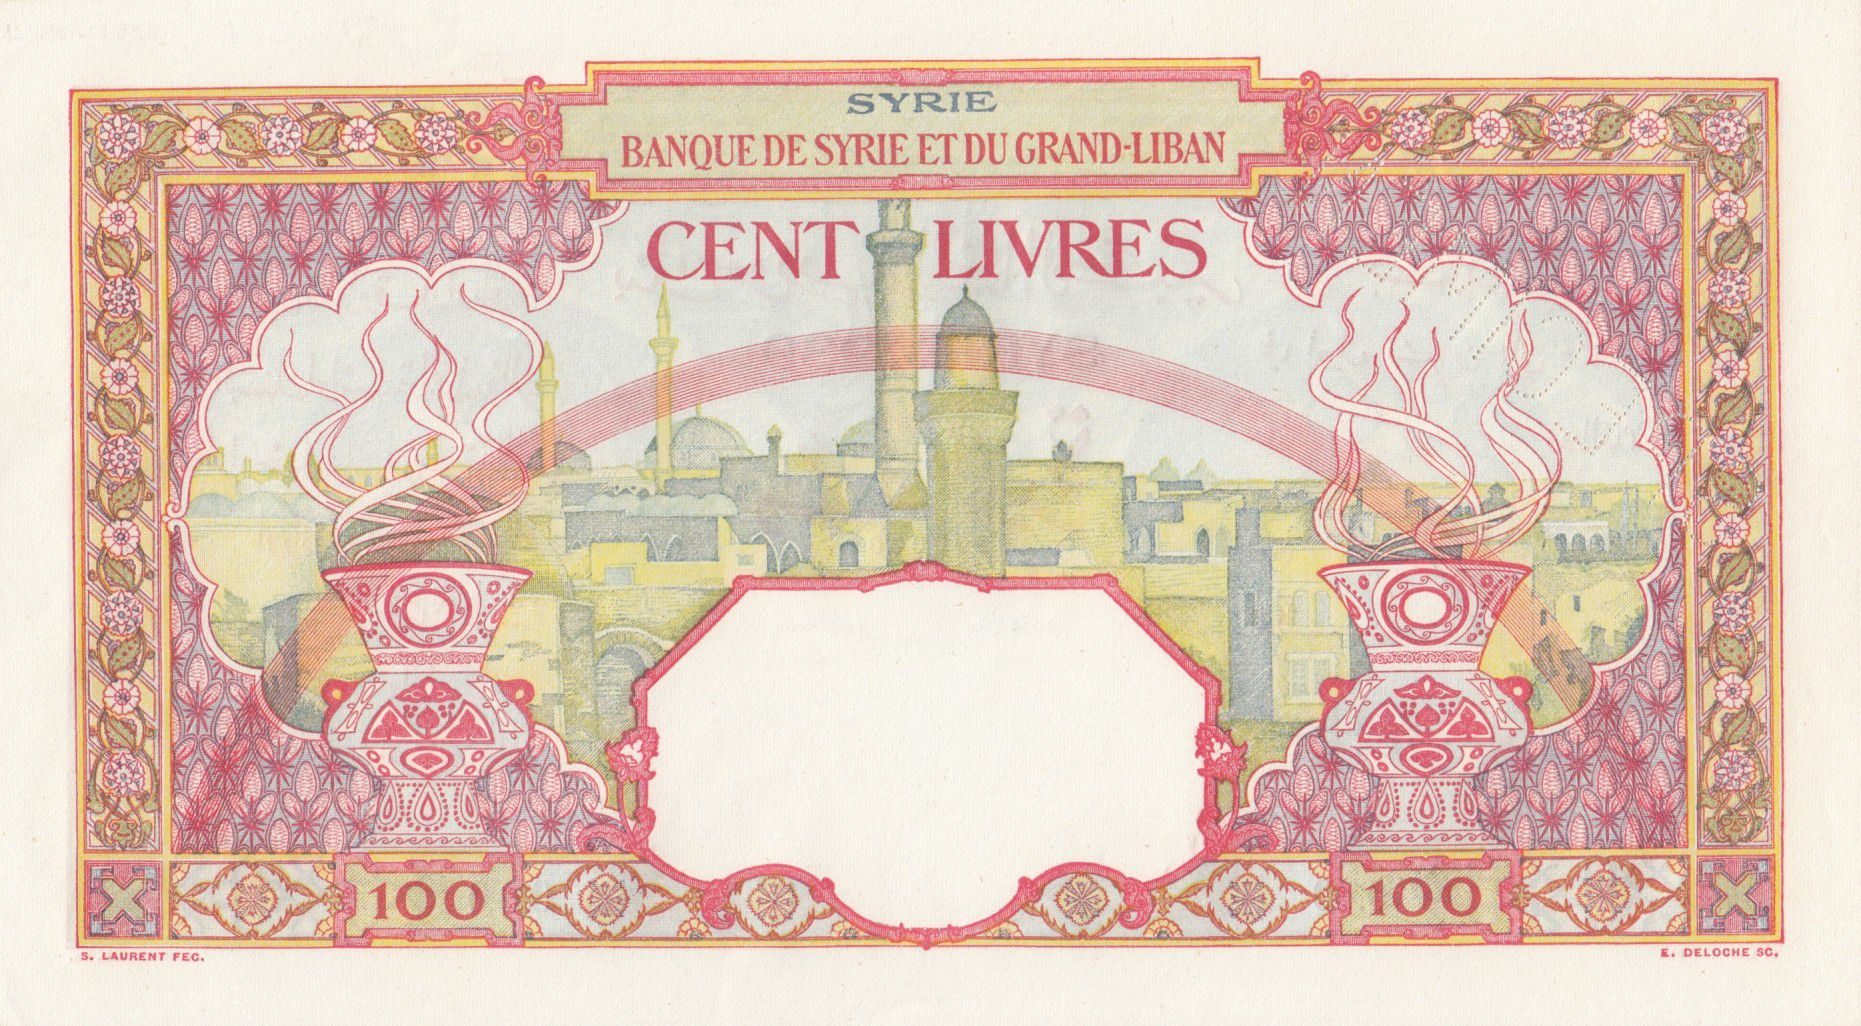 Syrian Arab Republic 100 Pounds 1939 - Banque de Syrie et du Grand-Liban - Specimen - P.39Ds